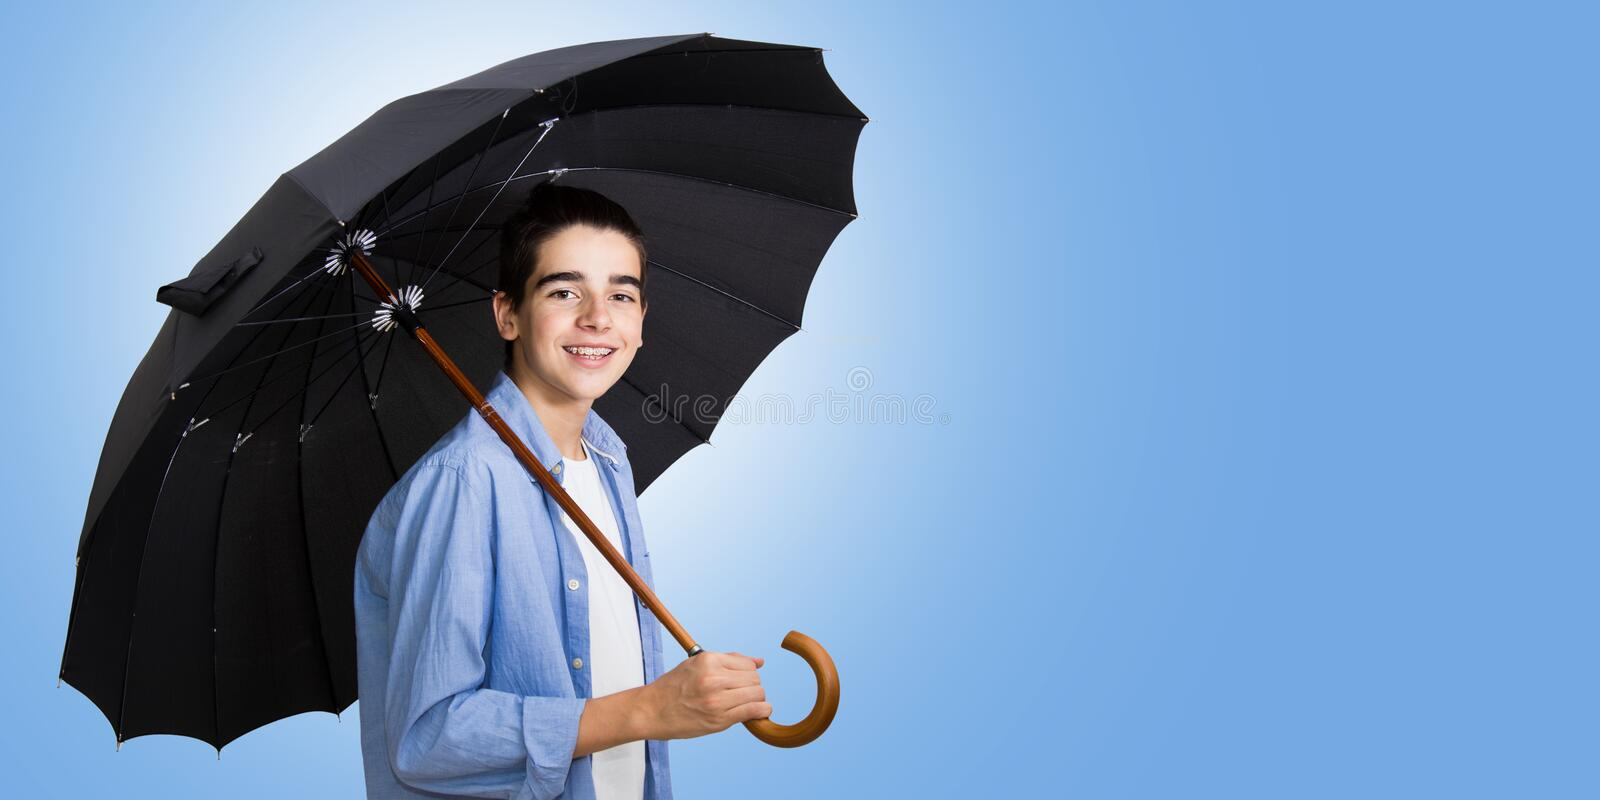 Teenager smiling with open umbrella royalty free stock image